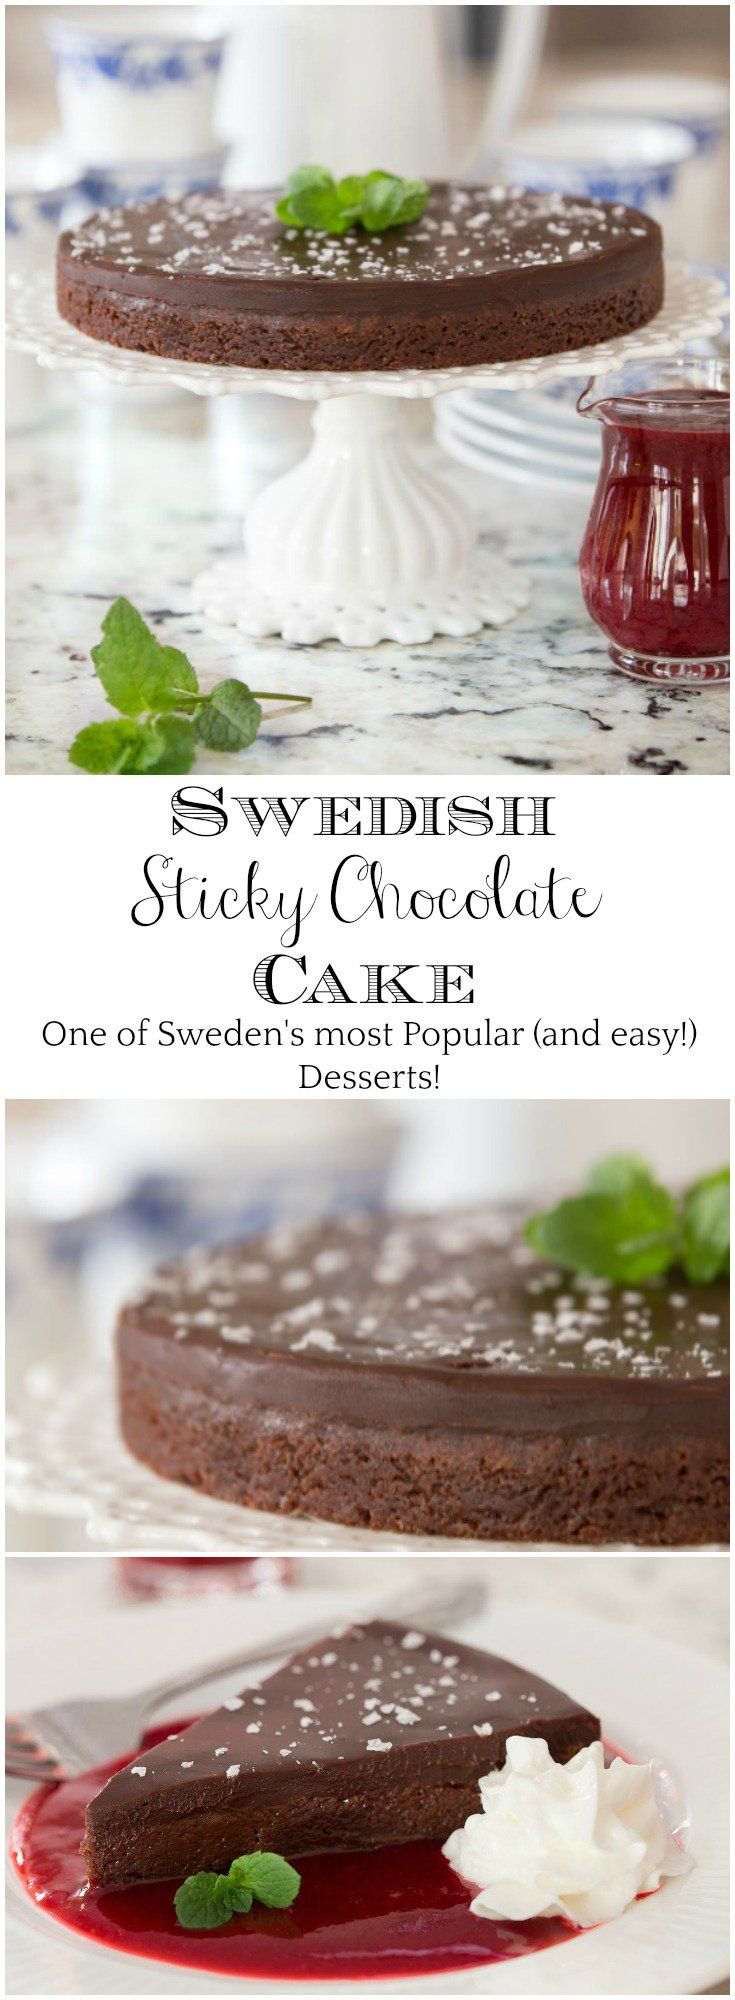 Kladdkaka (aka Swedish Sticky Chocolate Cake) is one of Sweden's most beloved (and easy!) desserts and every chocolate lover's dream come true!   via @cafesucrefarine